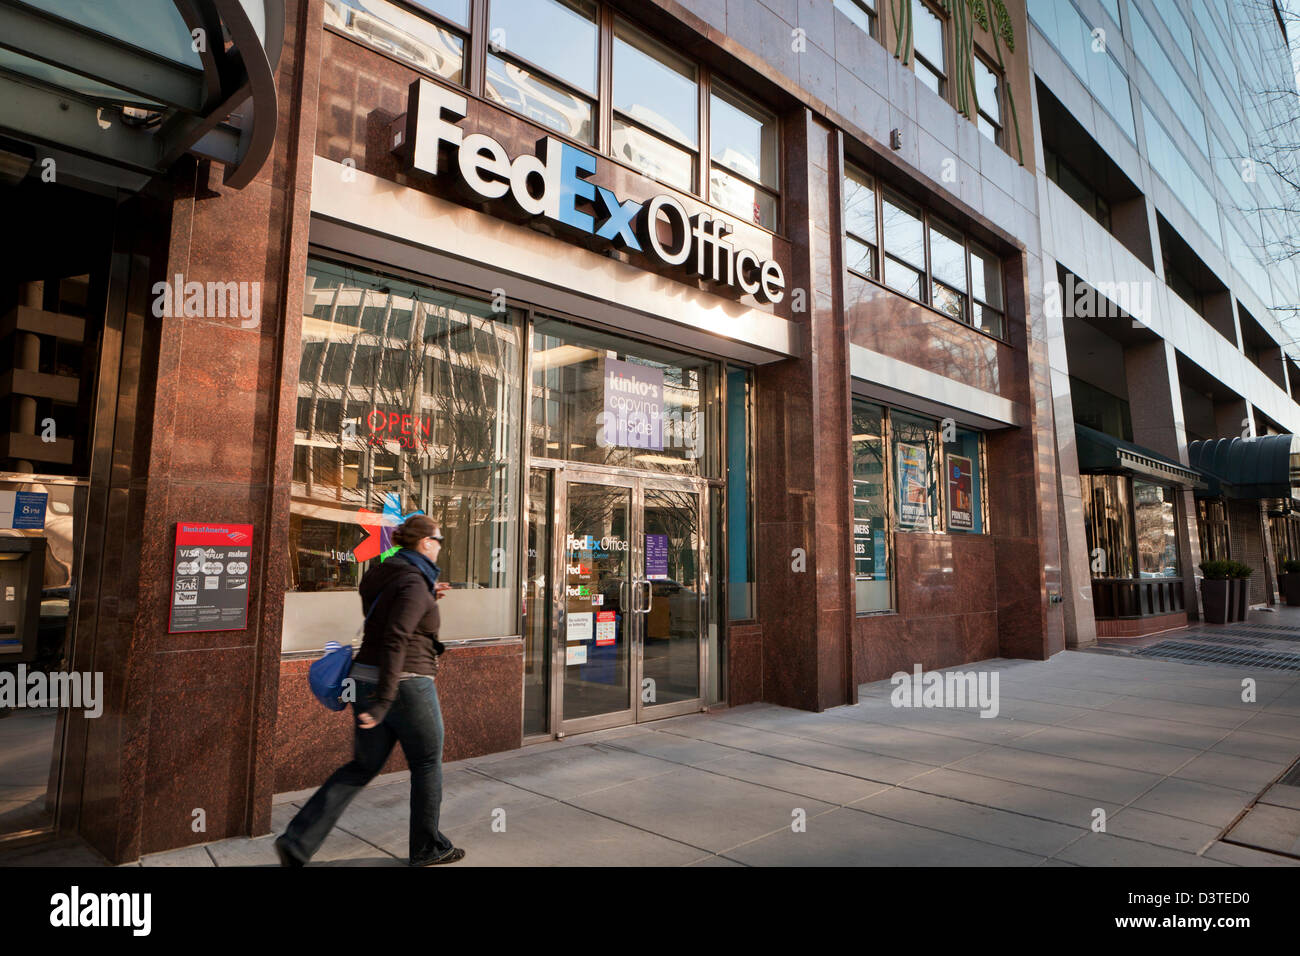 Cost of color printing at fedex - Fedex Kinko S Printing Services Fedex Office Storefront Washington Dc Usa Stock Image